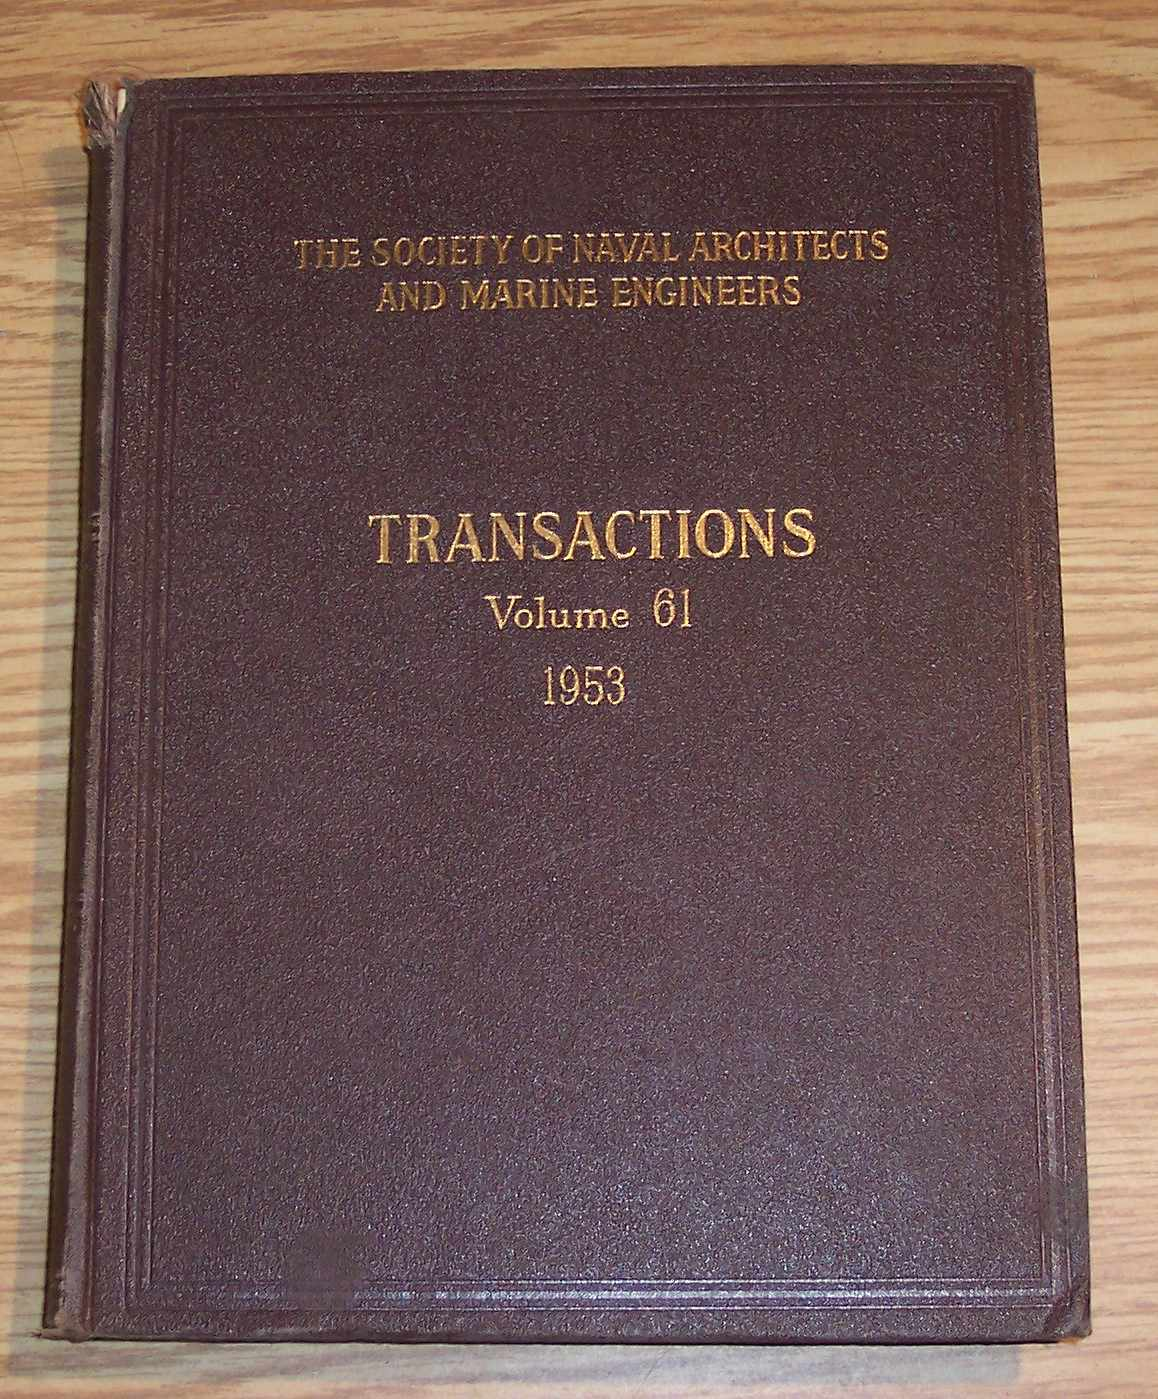 Image for The Society of Naval Architects and Marine Engineers Transactions Volume 61 1953